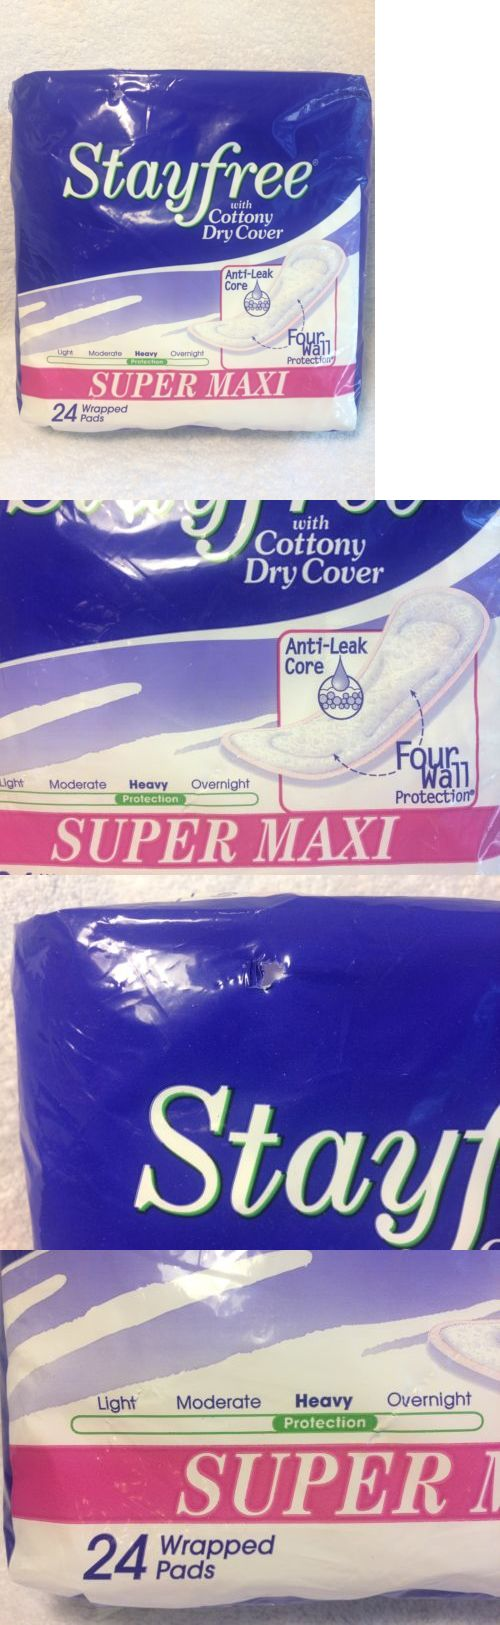 Sanitary Napkins: Stayfree Super Maxi Pads New Vintage 24 Pack Sanitary Napkins 2001 Prop -> BUY IT NOW ONLY: $49.99 on eBay!